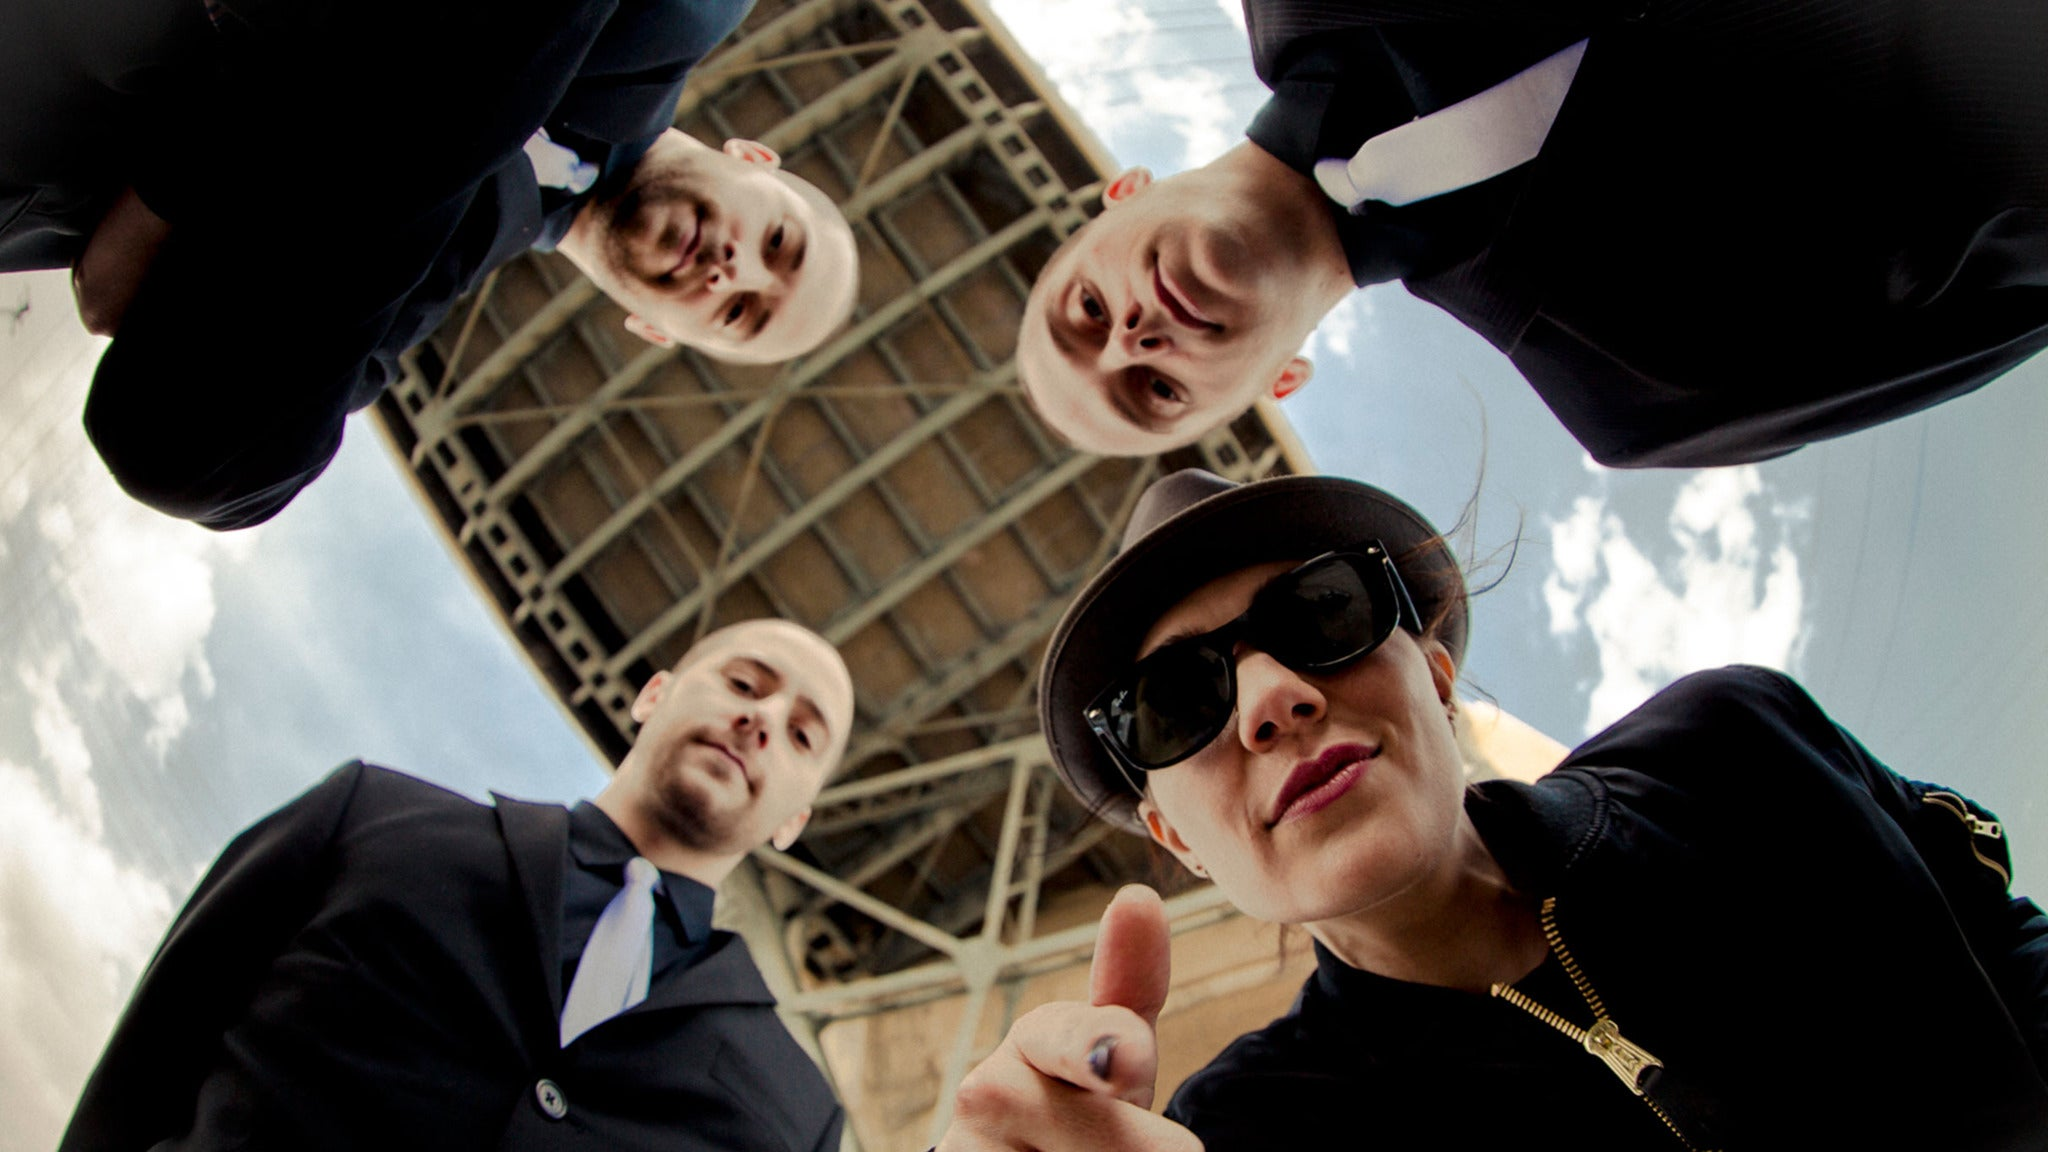 The Interrupters at The Local 662 - St Petersburg, FL 33701